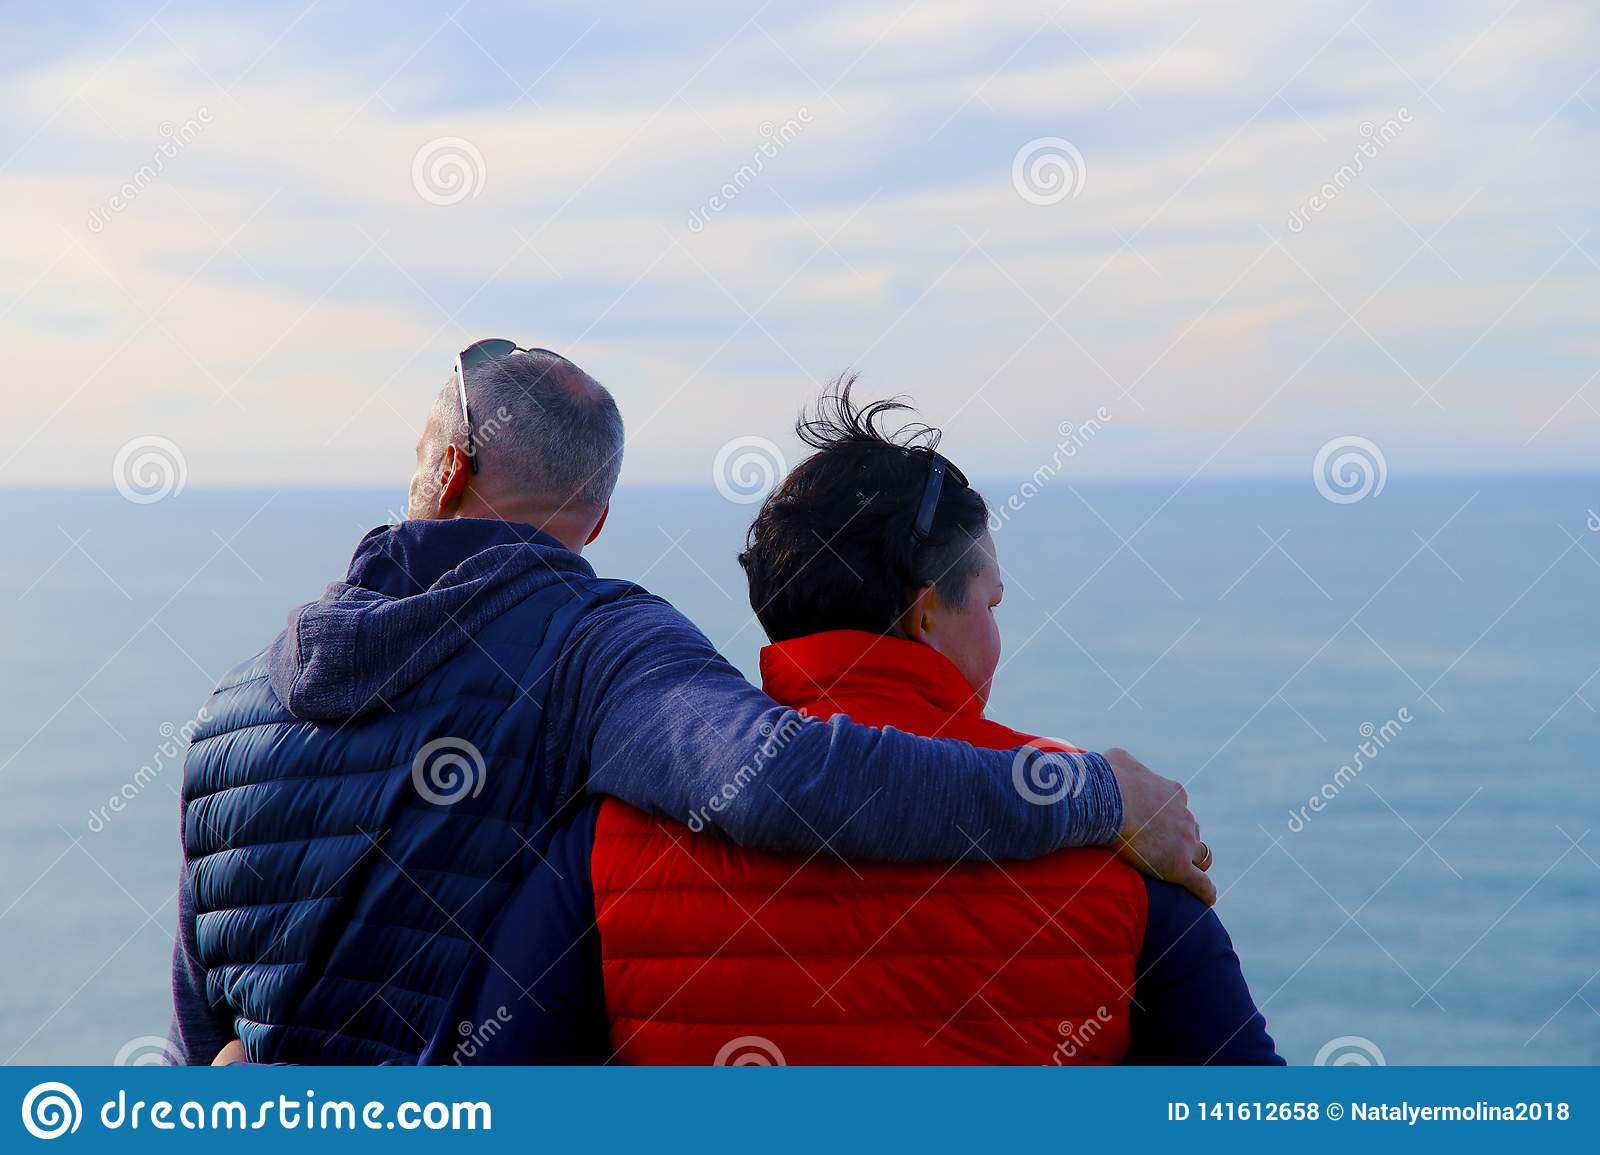 A man in a blue vest hugs a woman in a red vest against the background of the ocean and the sky.